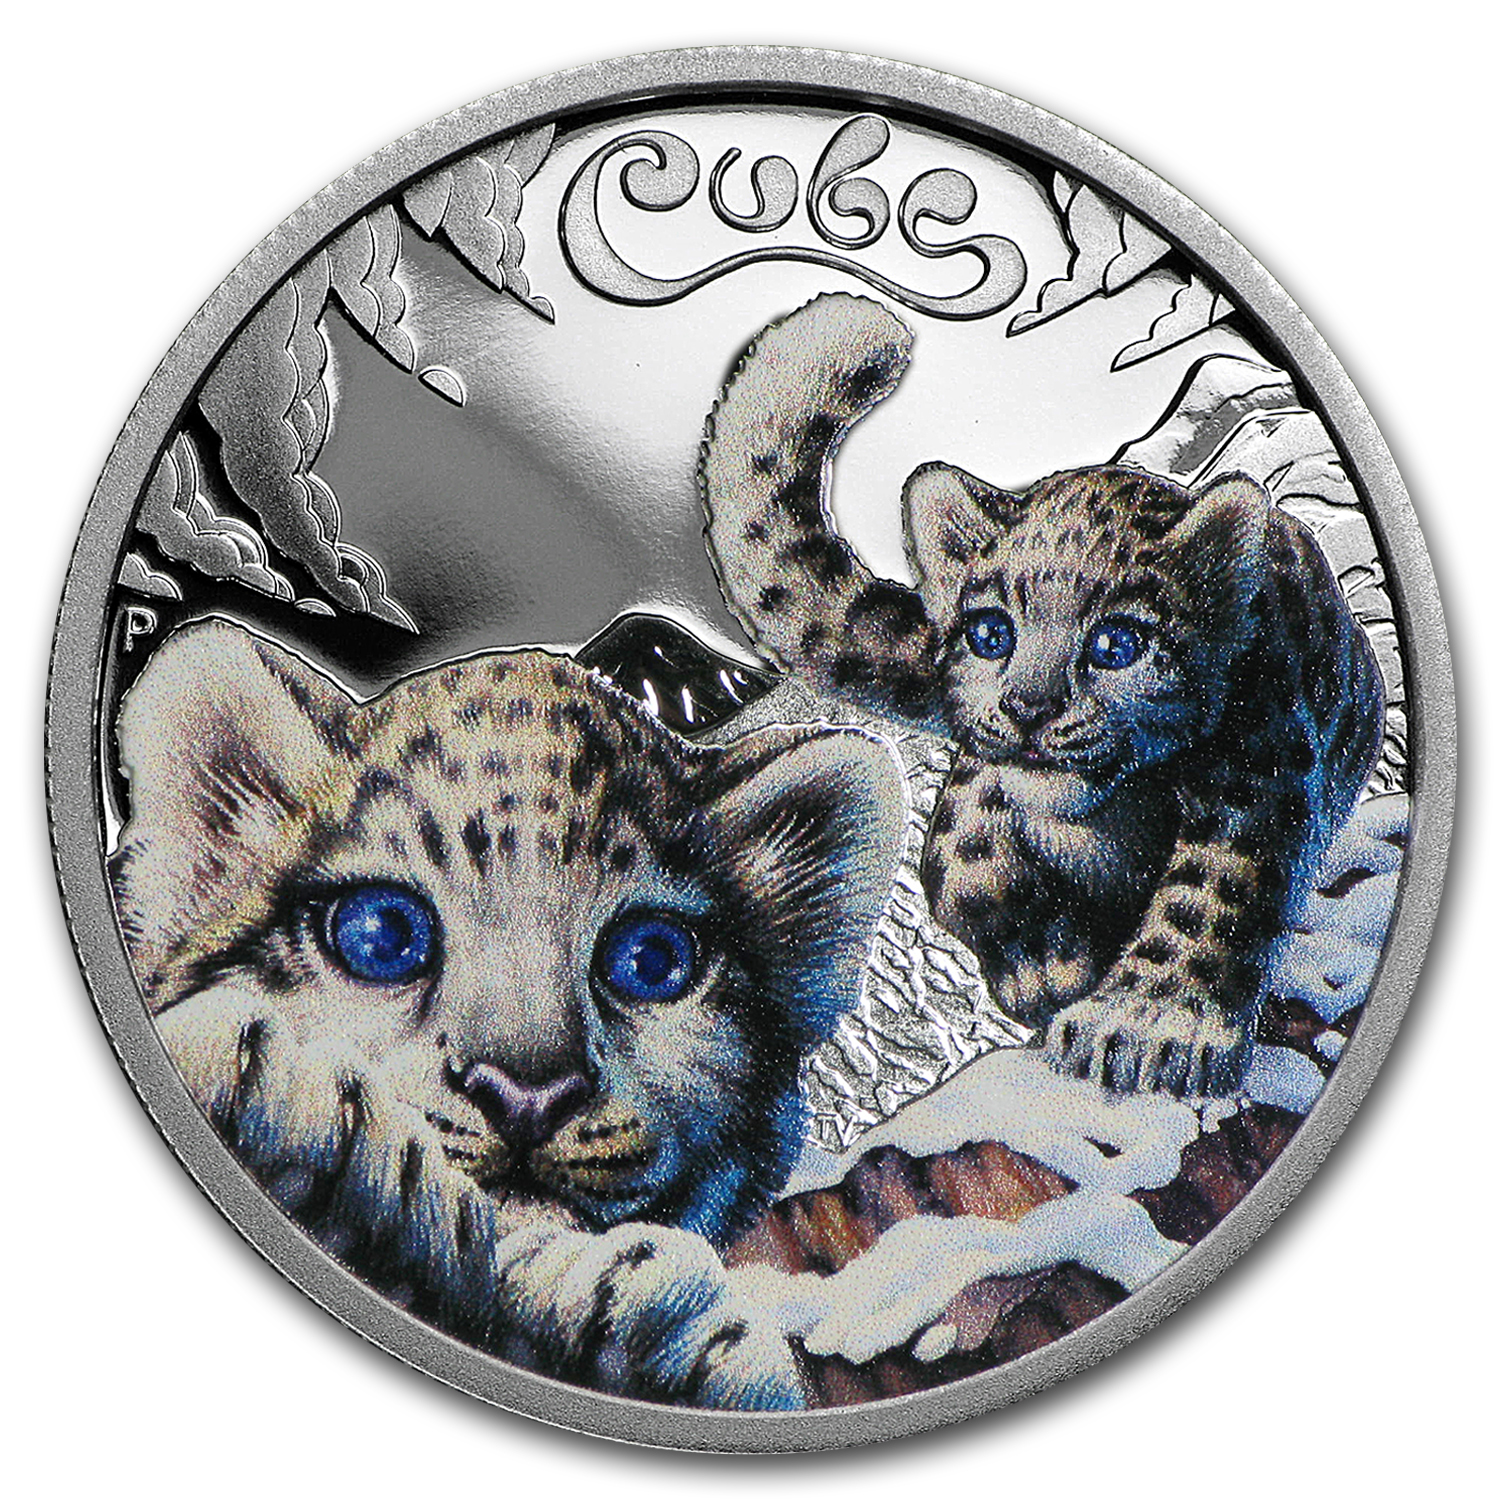 2016 Tuvalu 1/2 oz Silver Proof Snow Leopard Cubs